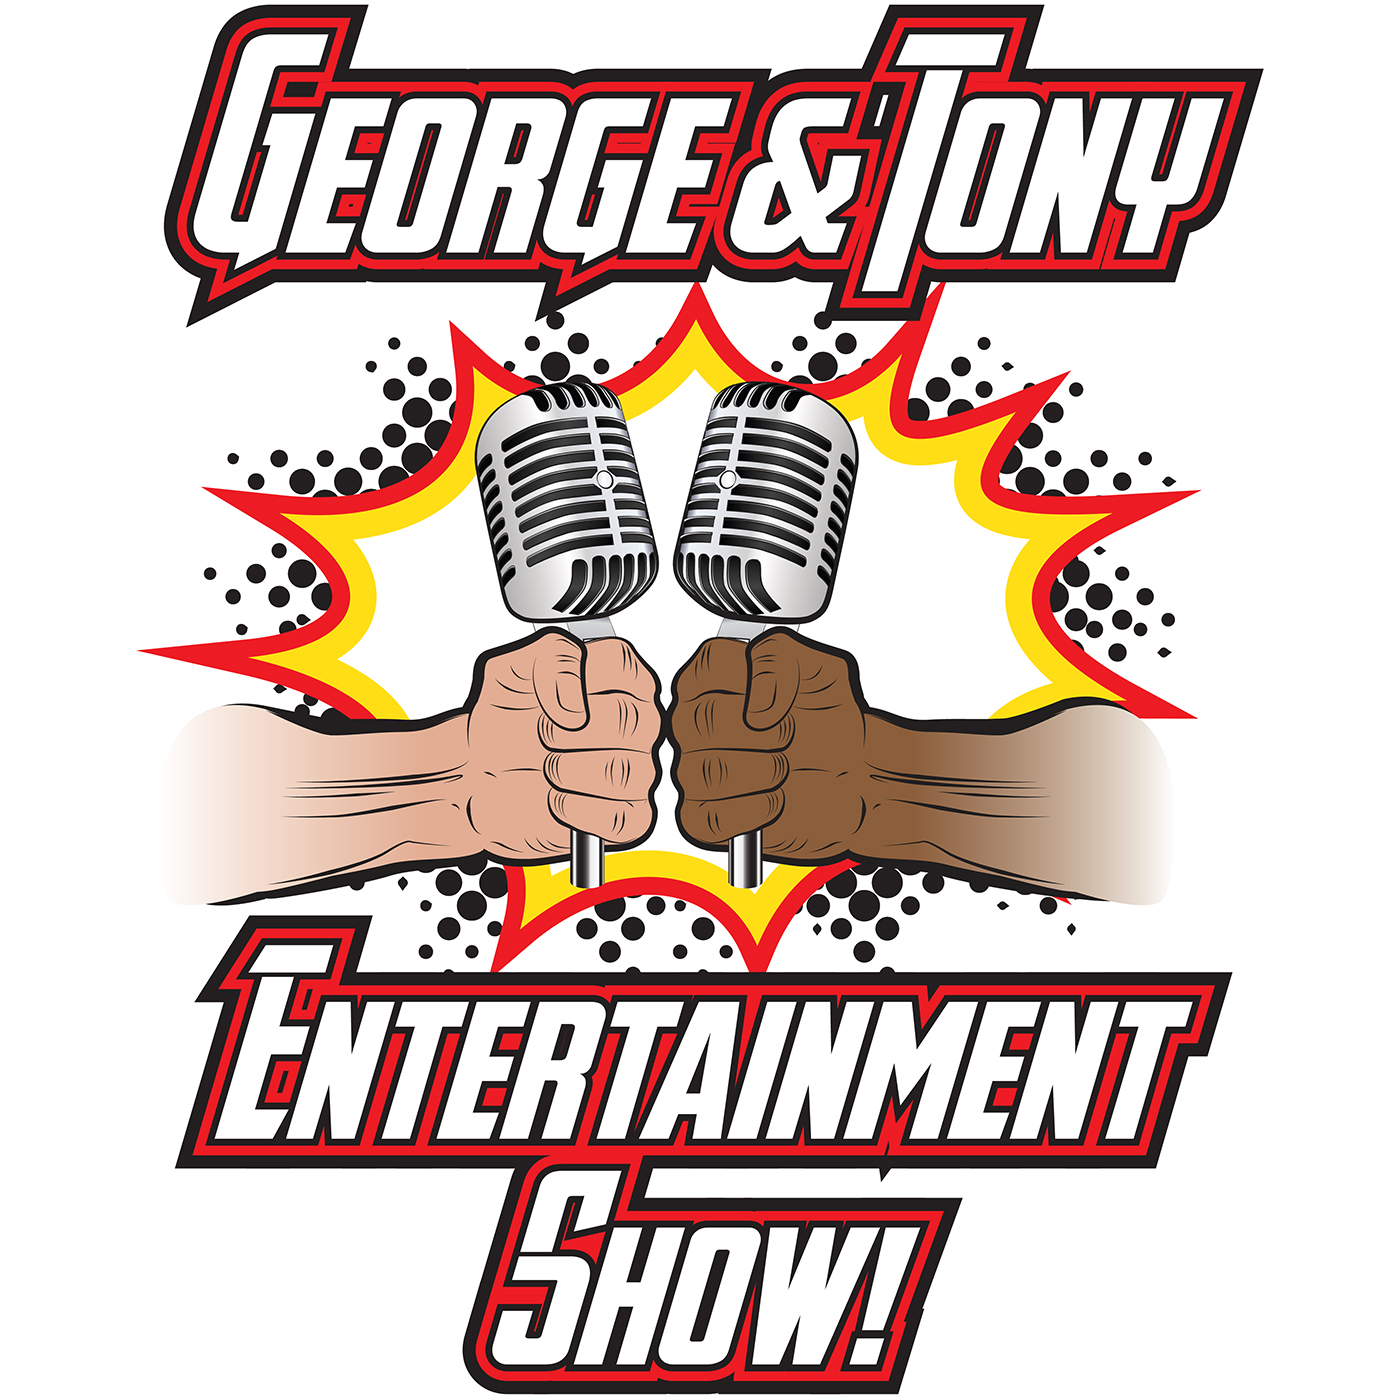 George and Tony Entertainment Show #148